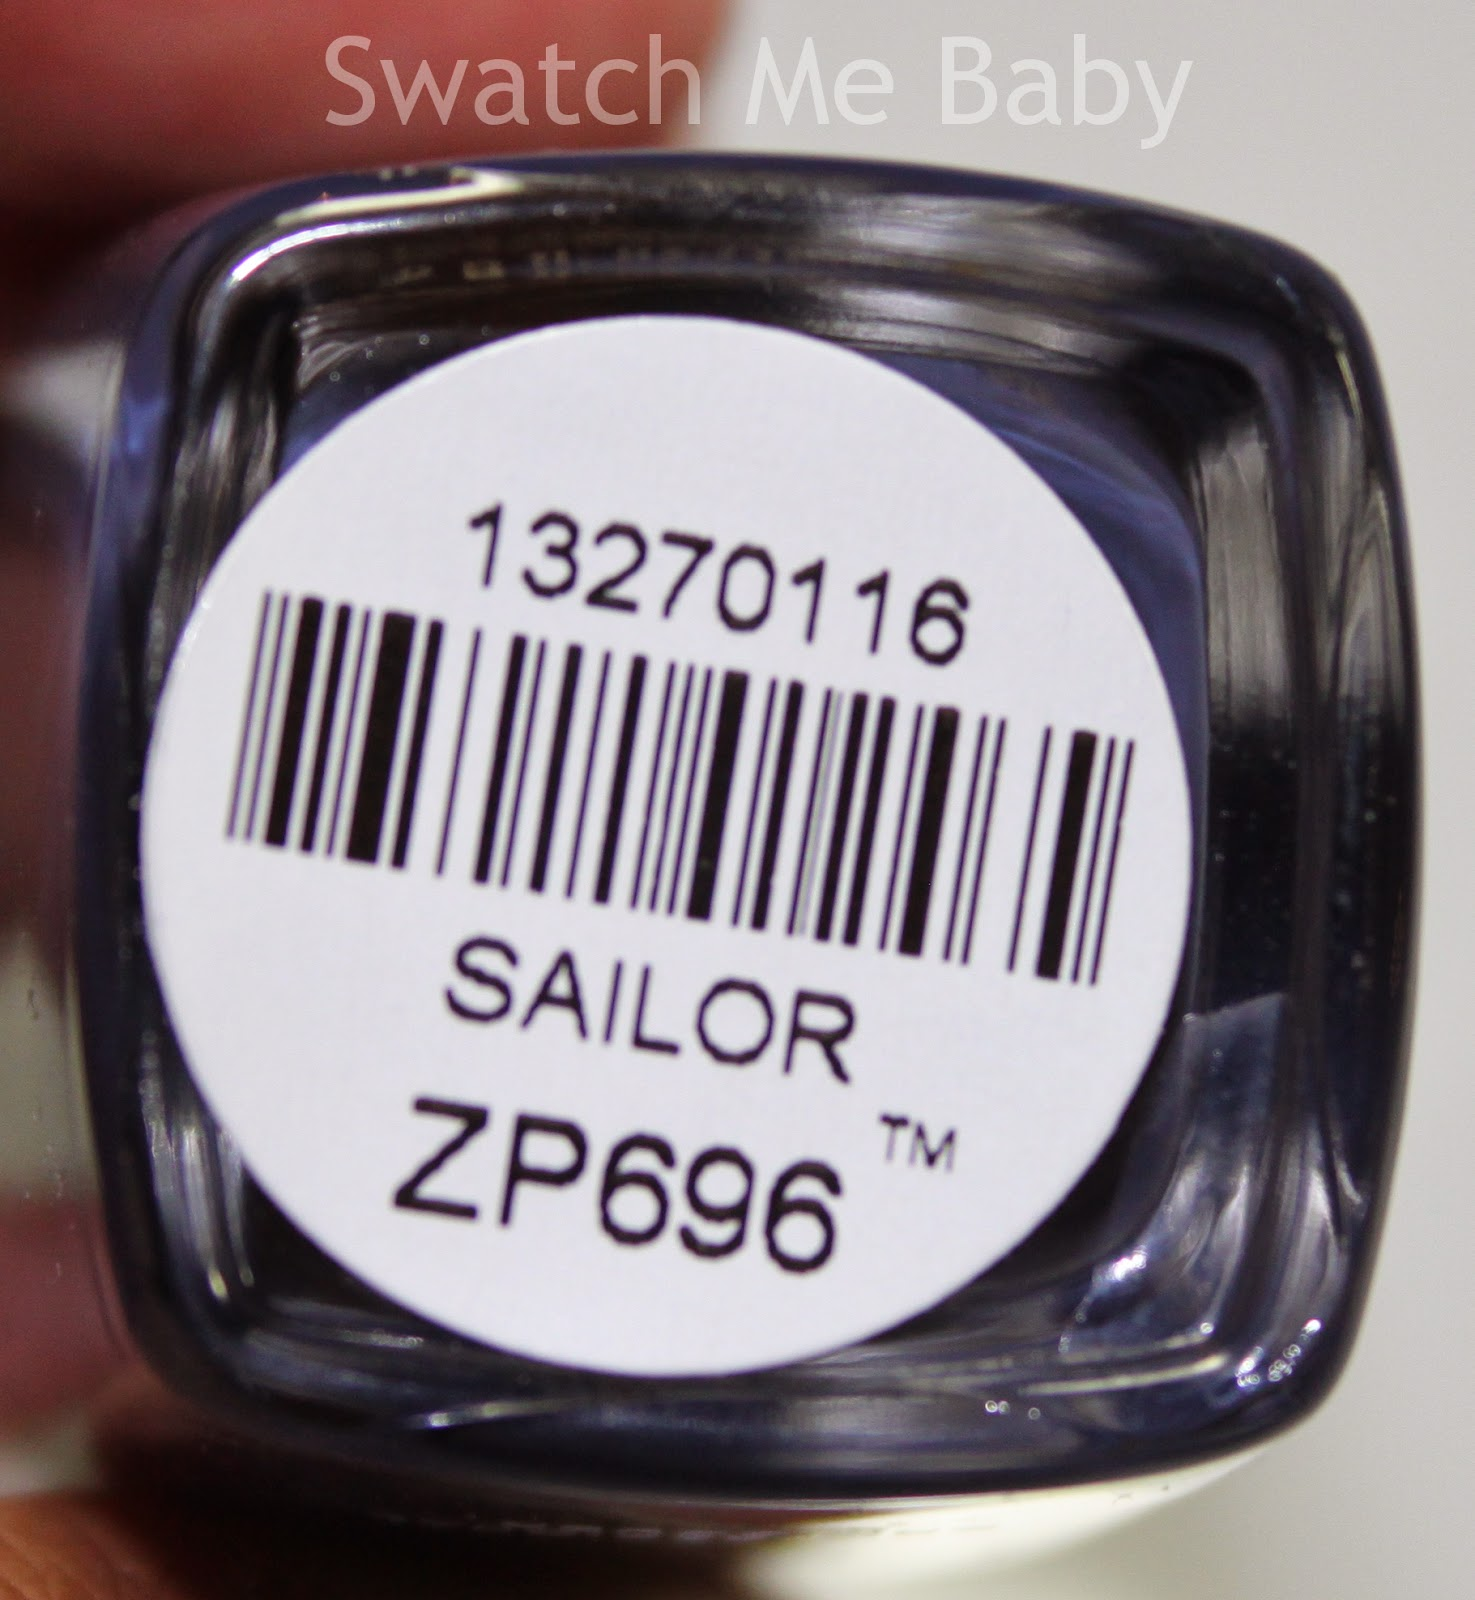 Zoya Nail Polish in Sailor Bottom Label